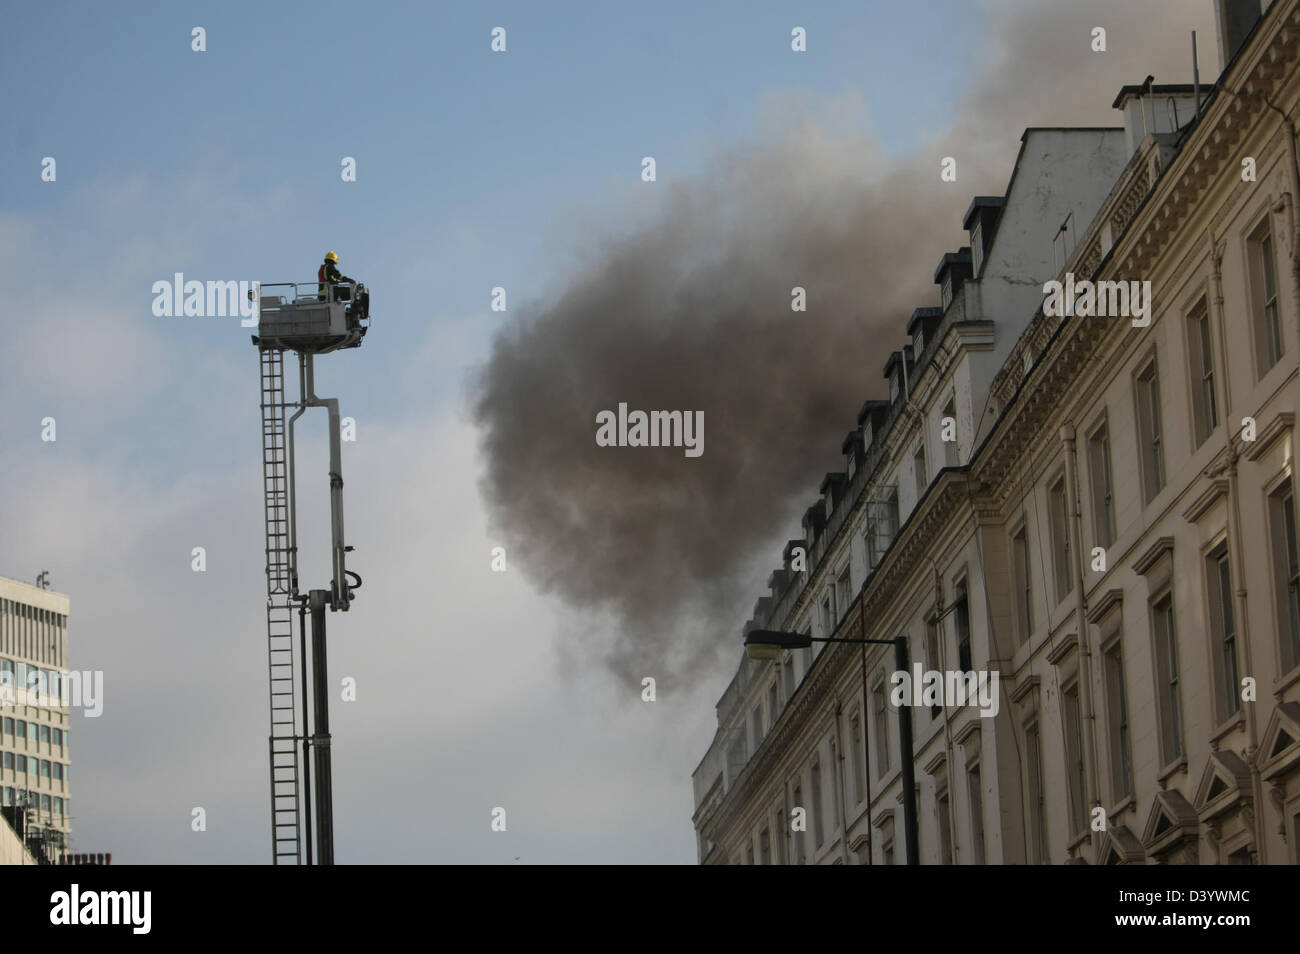 London, UK, 27 February 2013, Smoke billows from the roof as firefighters tackle blaze in Bayswater. Station Manager - Stock Image